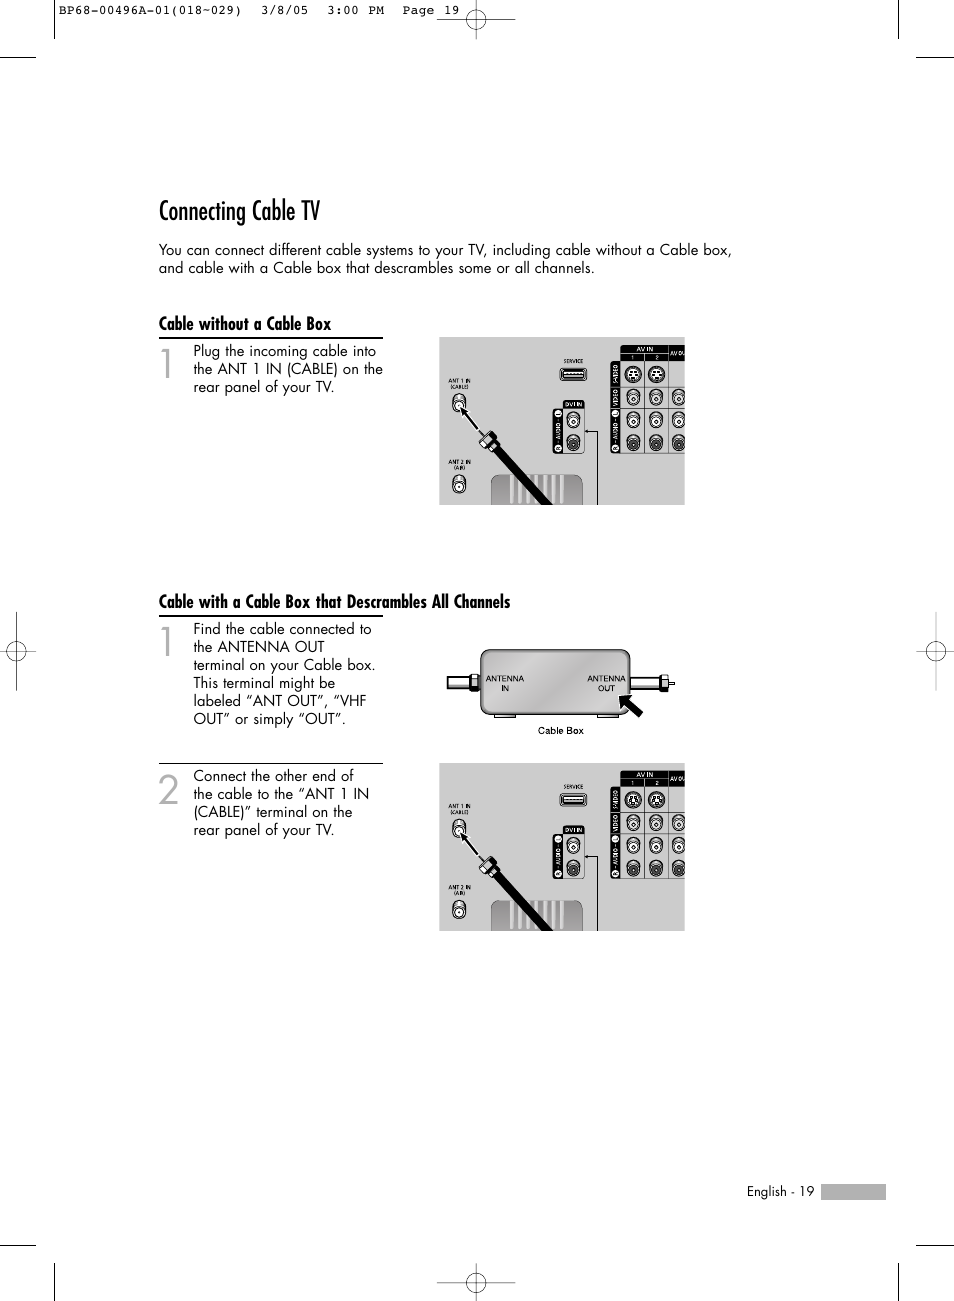 connecting cable tv cable without a cable box samsung hlr4266wx rh manualsdir com